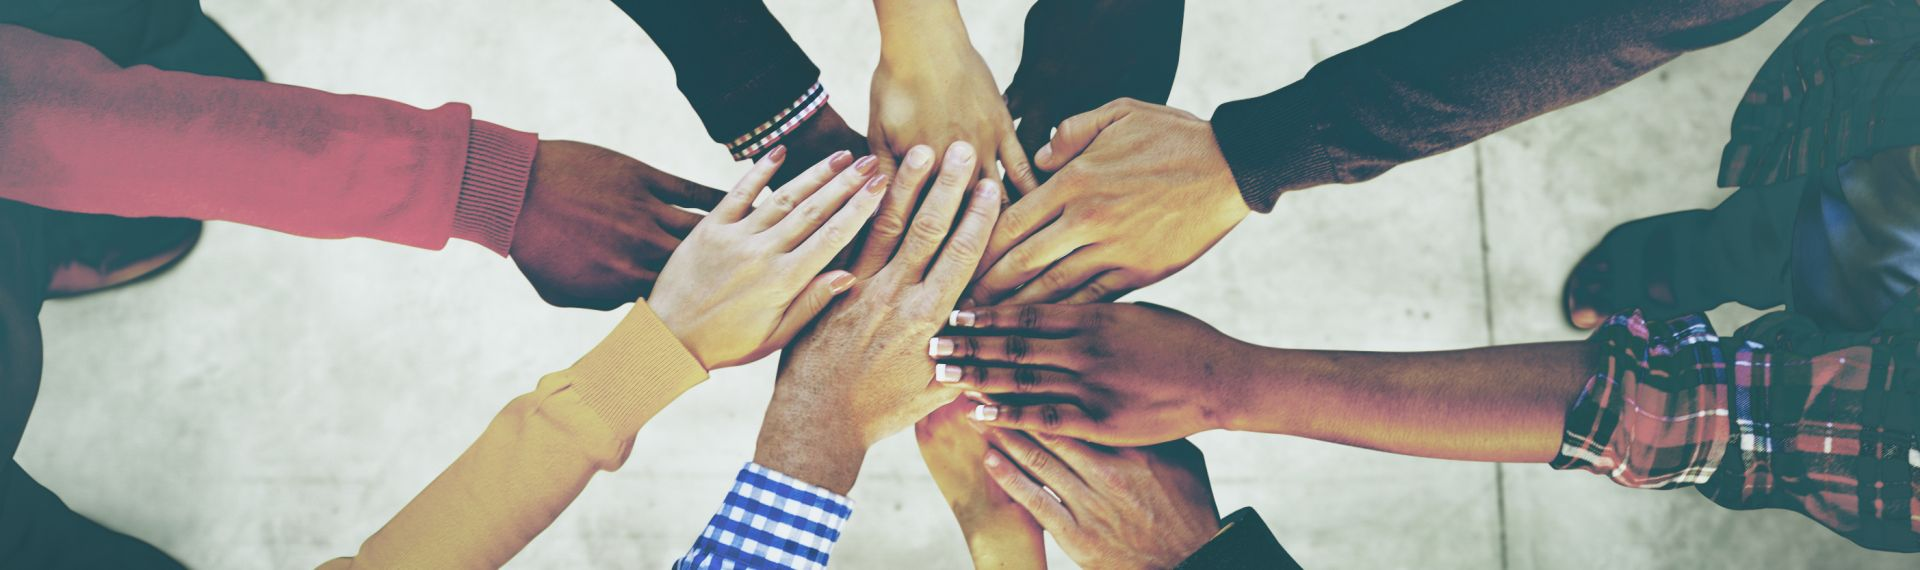 A diverse group of hands stacked on top of each other